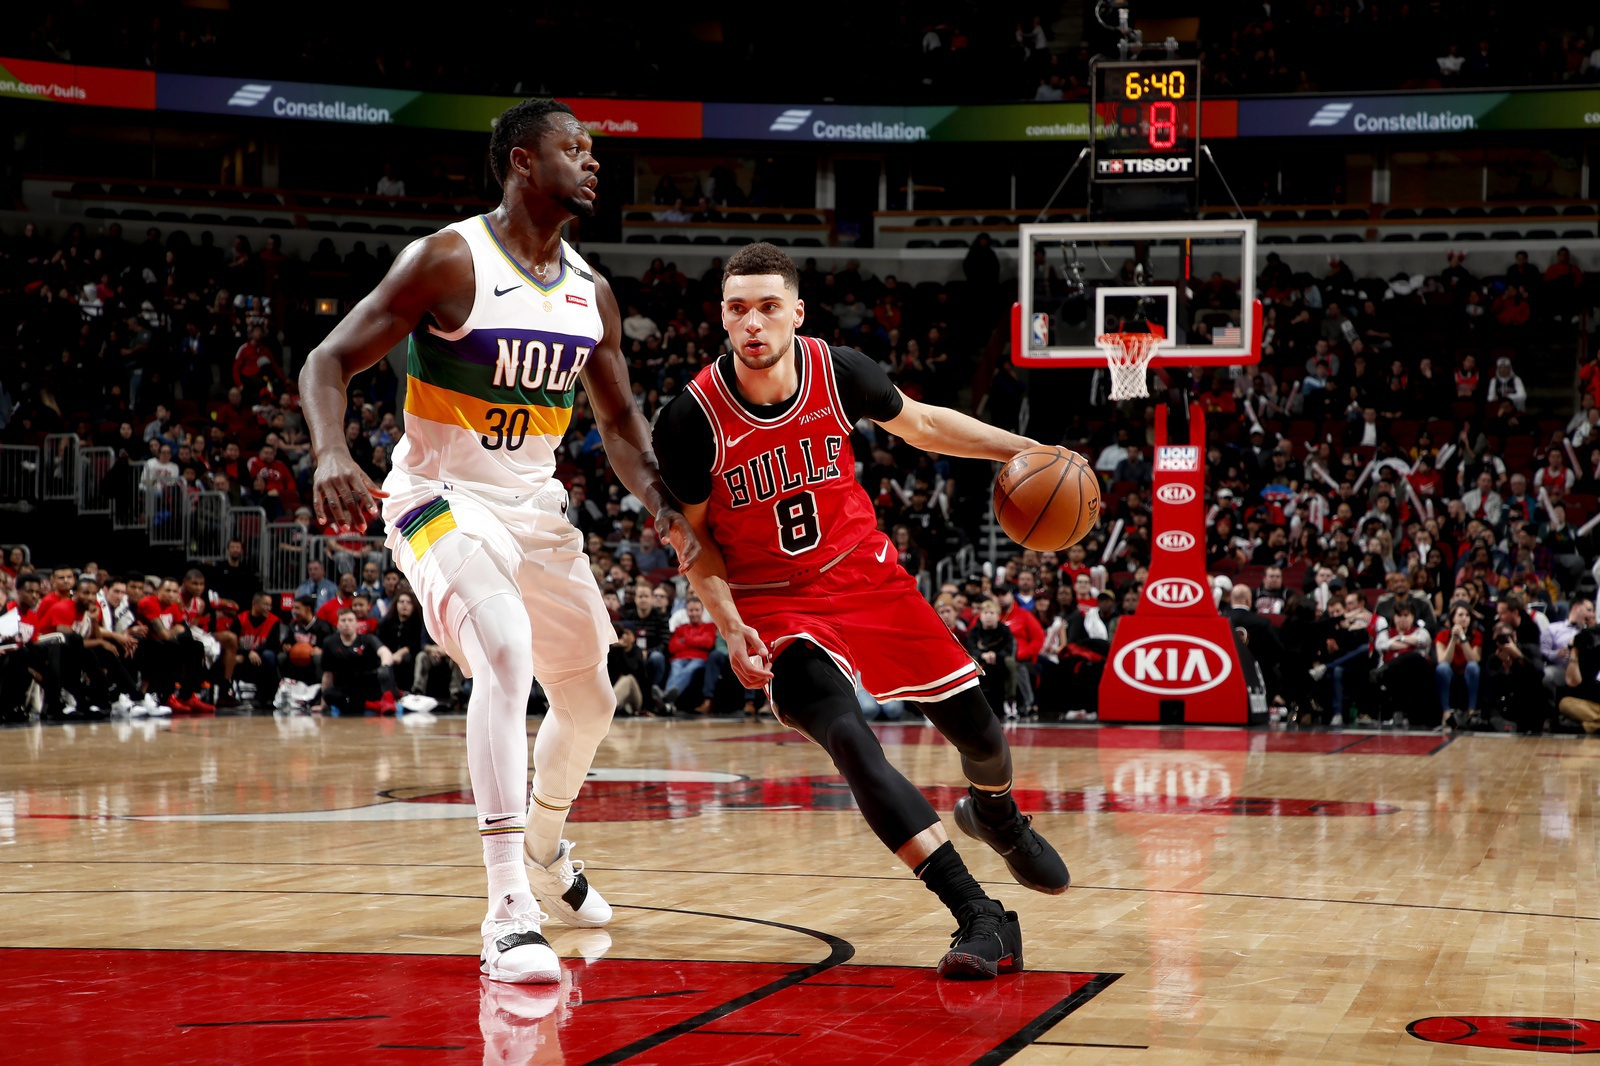 Zach LaVine #8 of the Chicago Bulls handles the ball against the New Orleans Pelicans on February 6, 2019 at United Center in Chicago, Illinois.